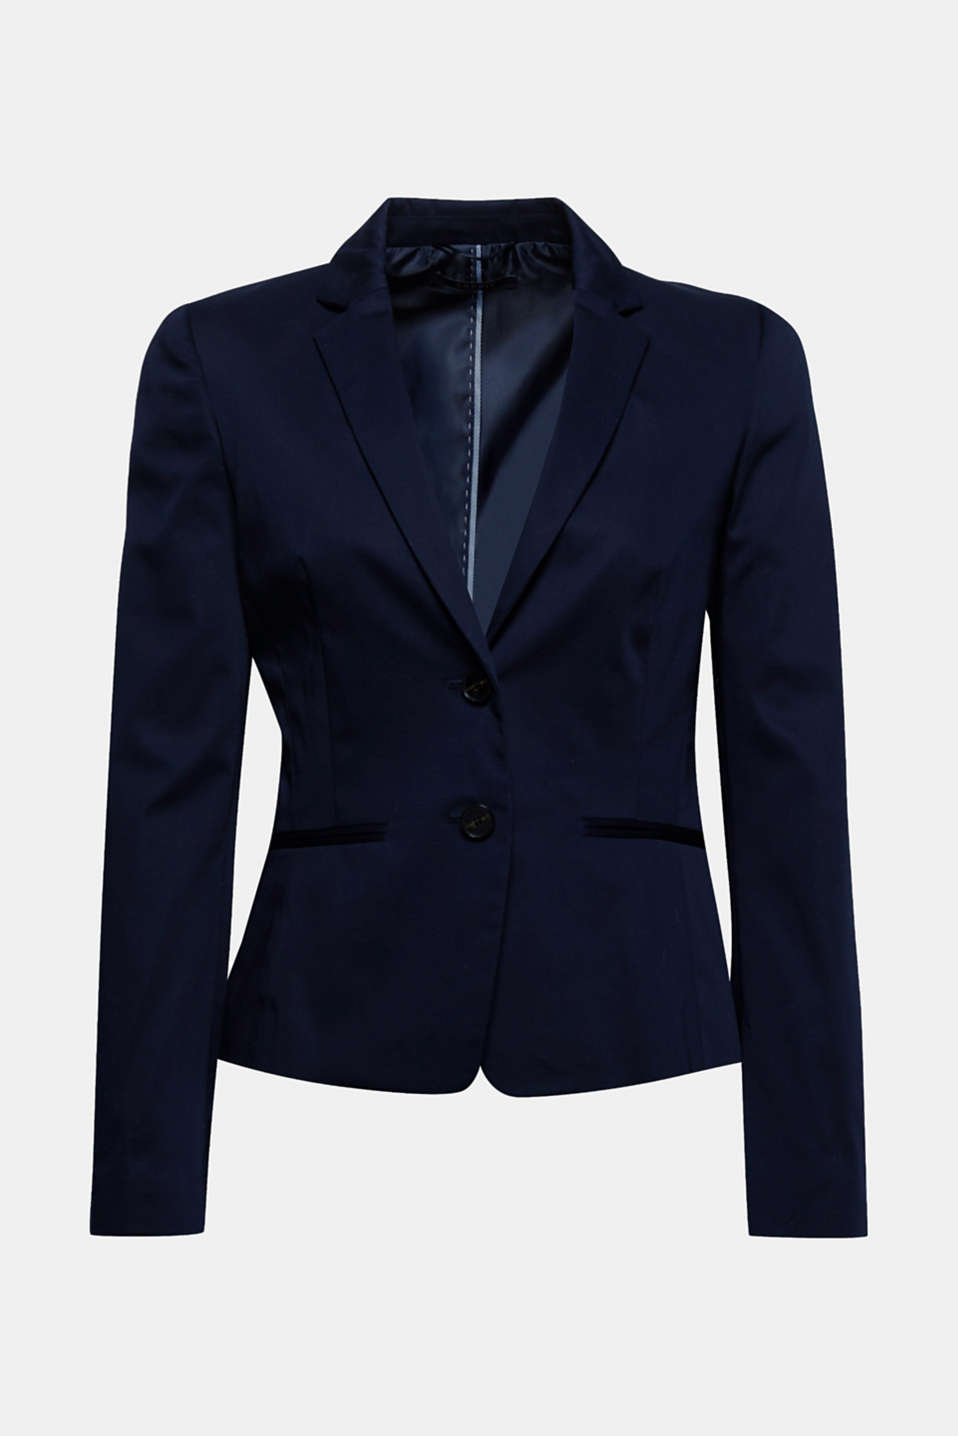 Your timeless fashion essential! The matte sheen and the fitted silhouette give this blazer a feminine touch.